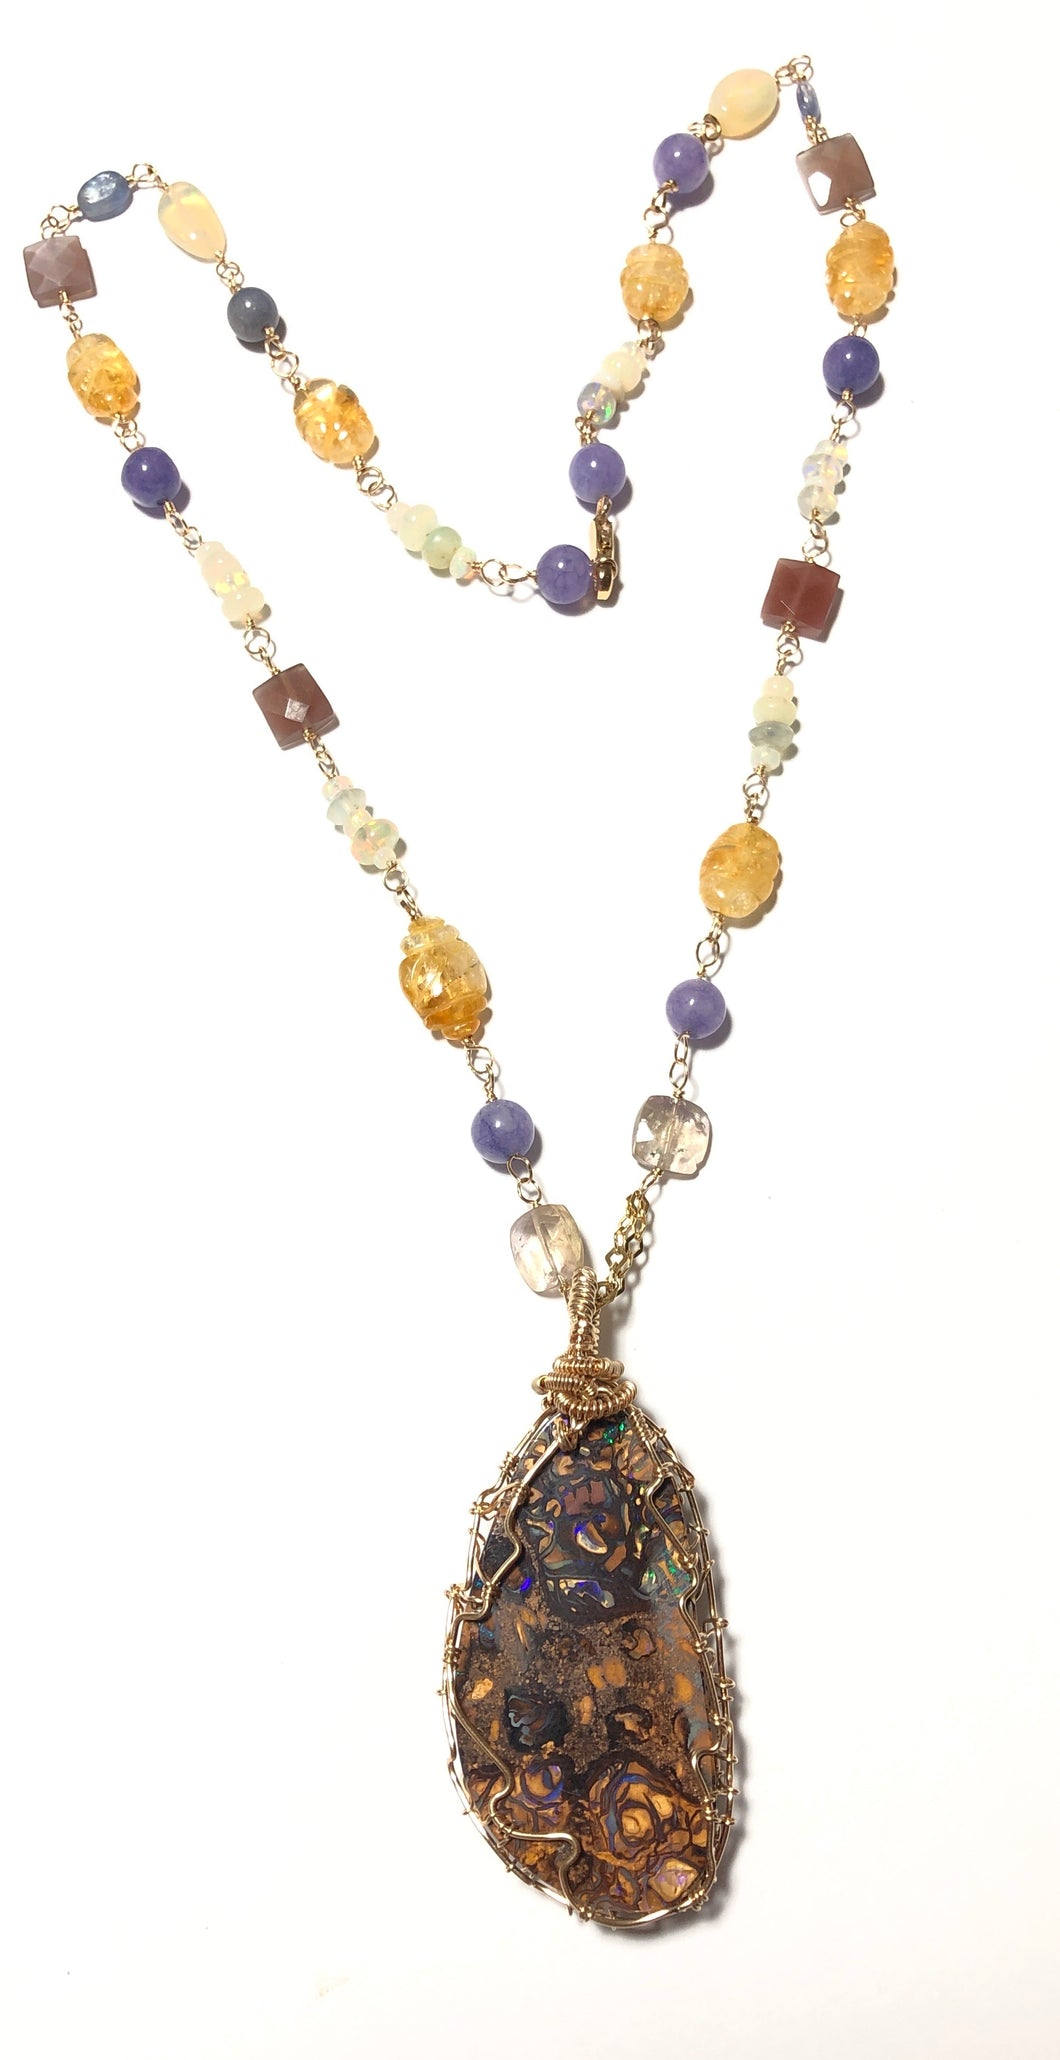 Necklace with Koroit opal, citrine, tanzanite and Ethiopian Opal beads